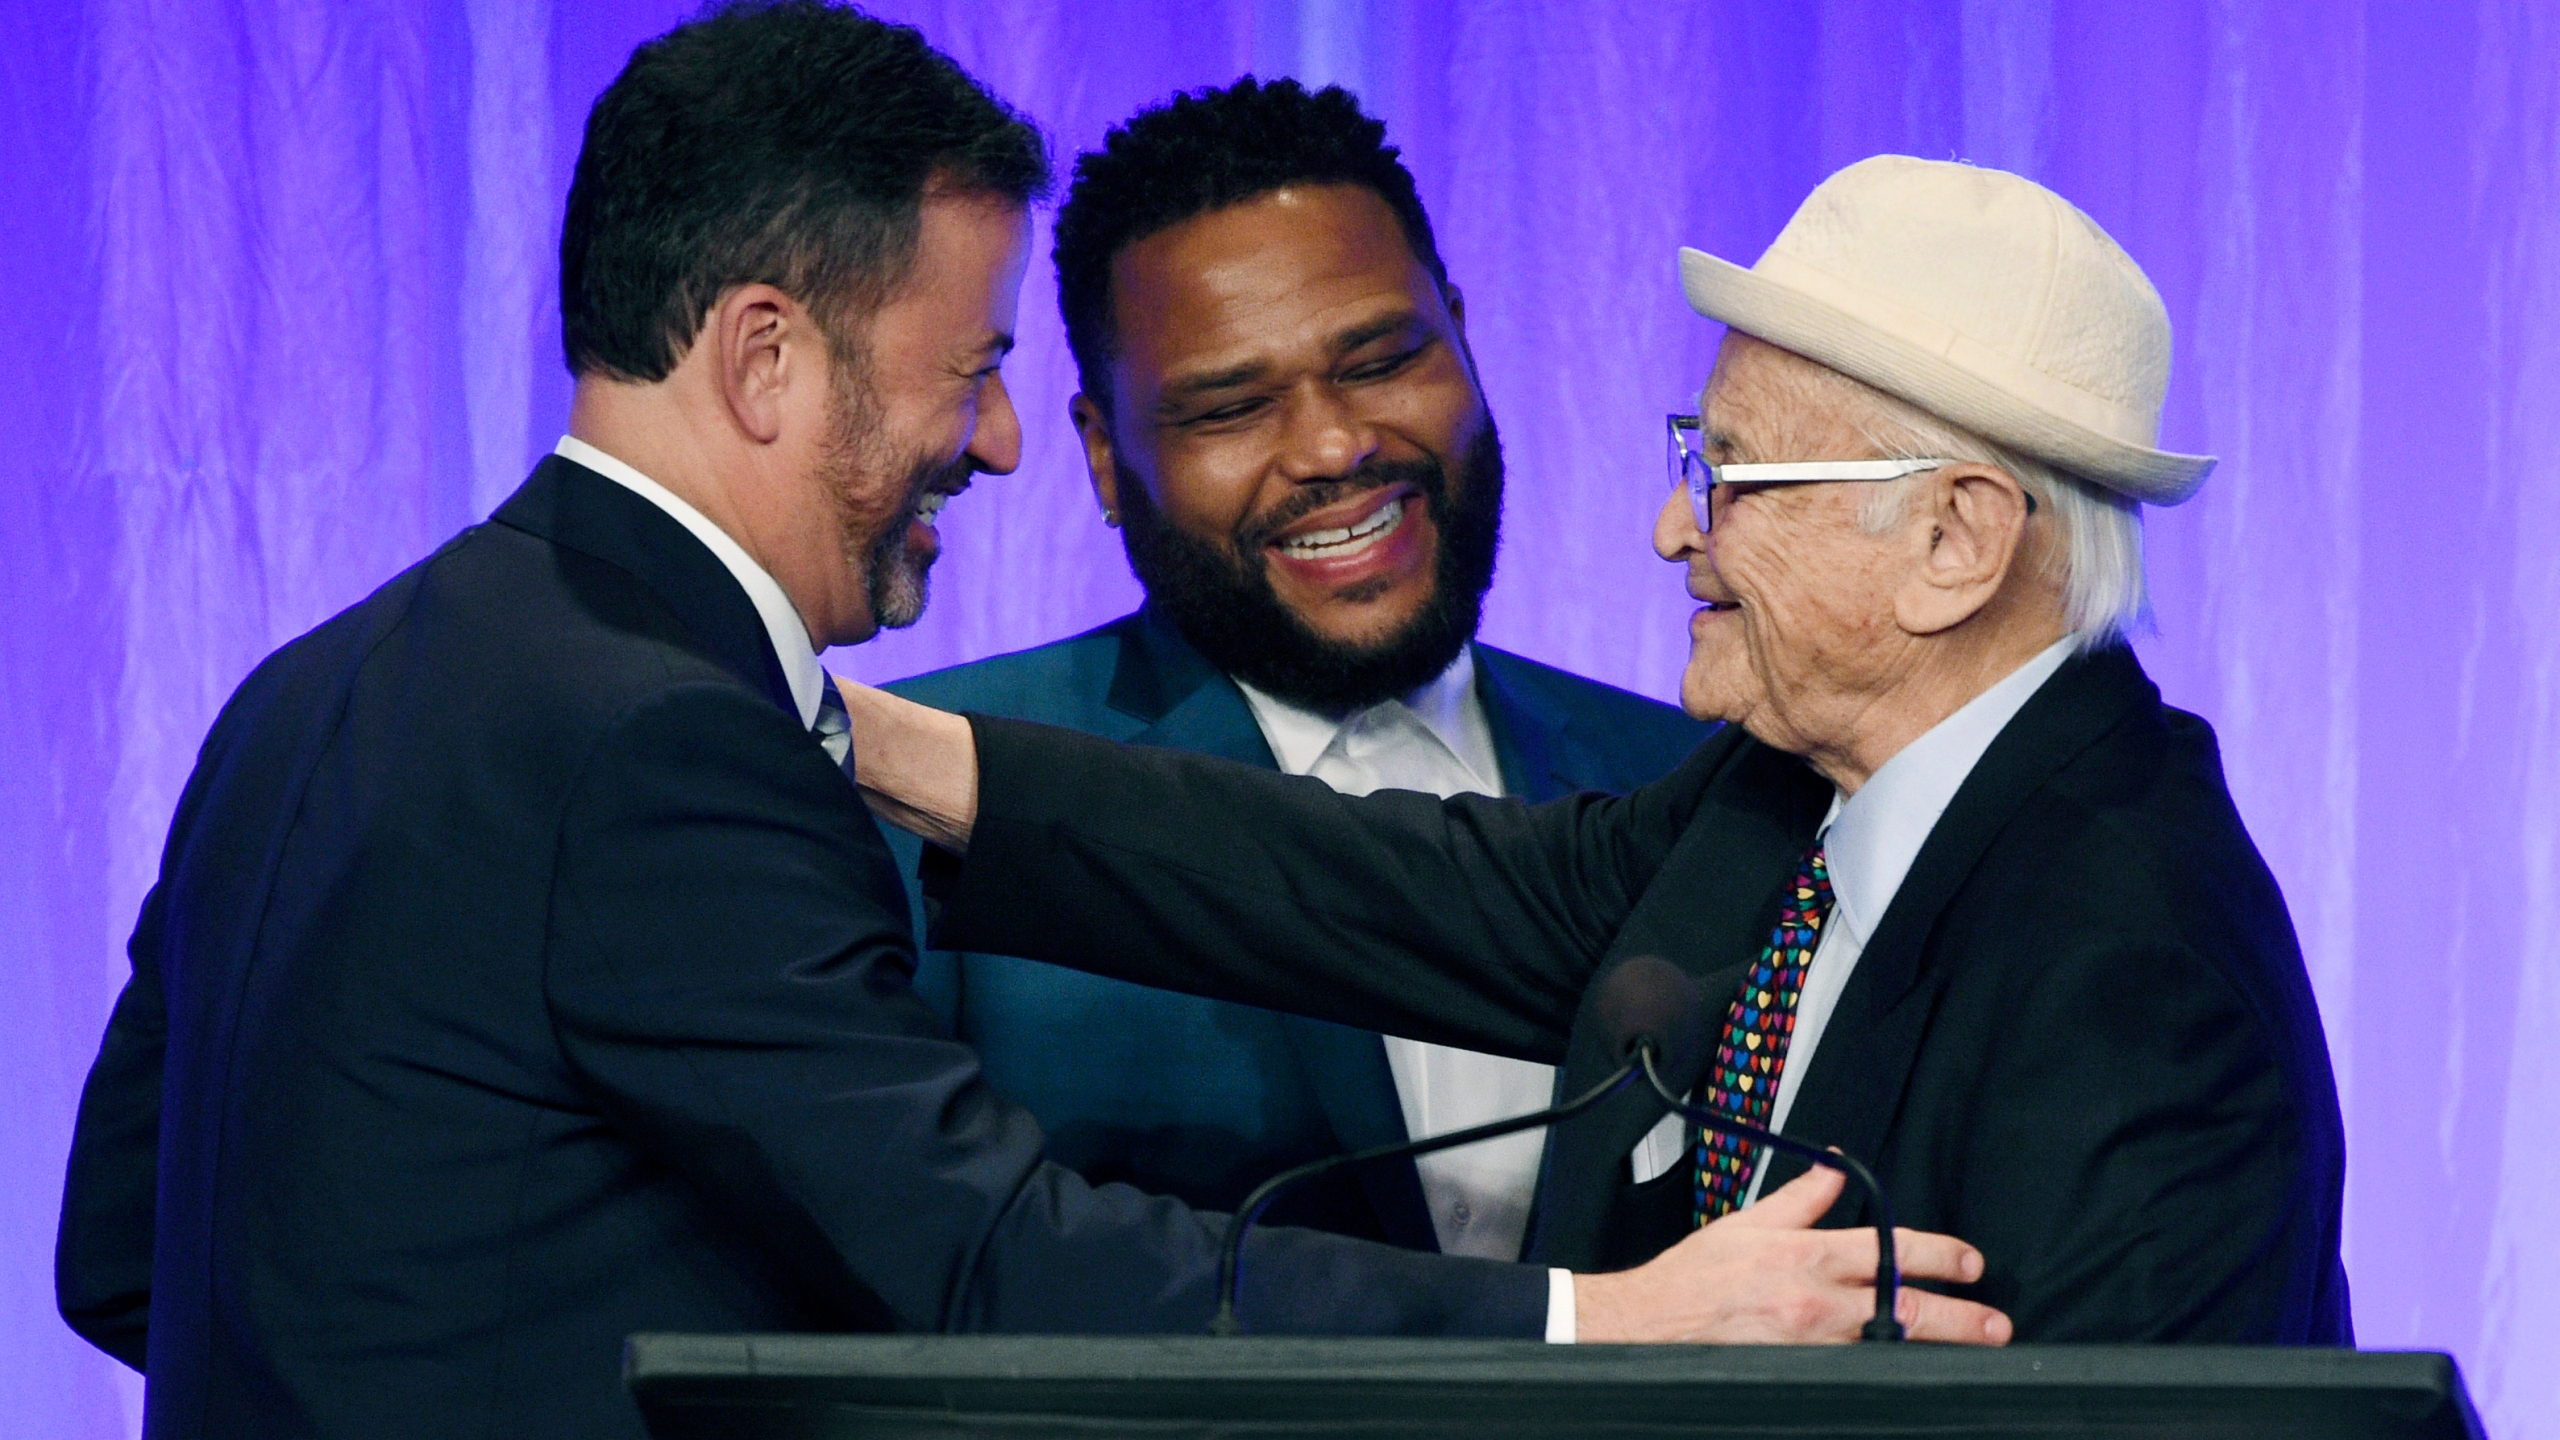 Norman Lear, Jimmy Kimmel, Anthony Anderson